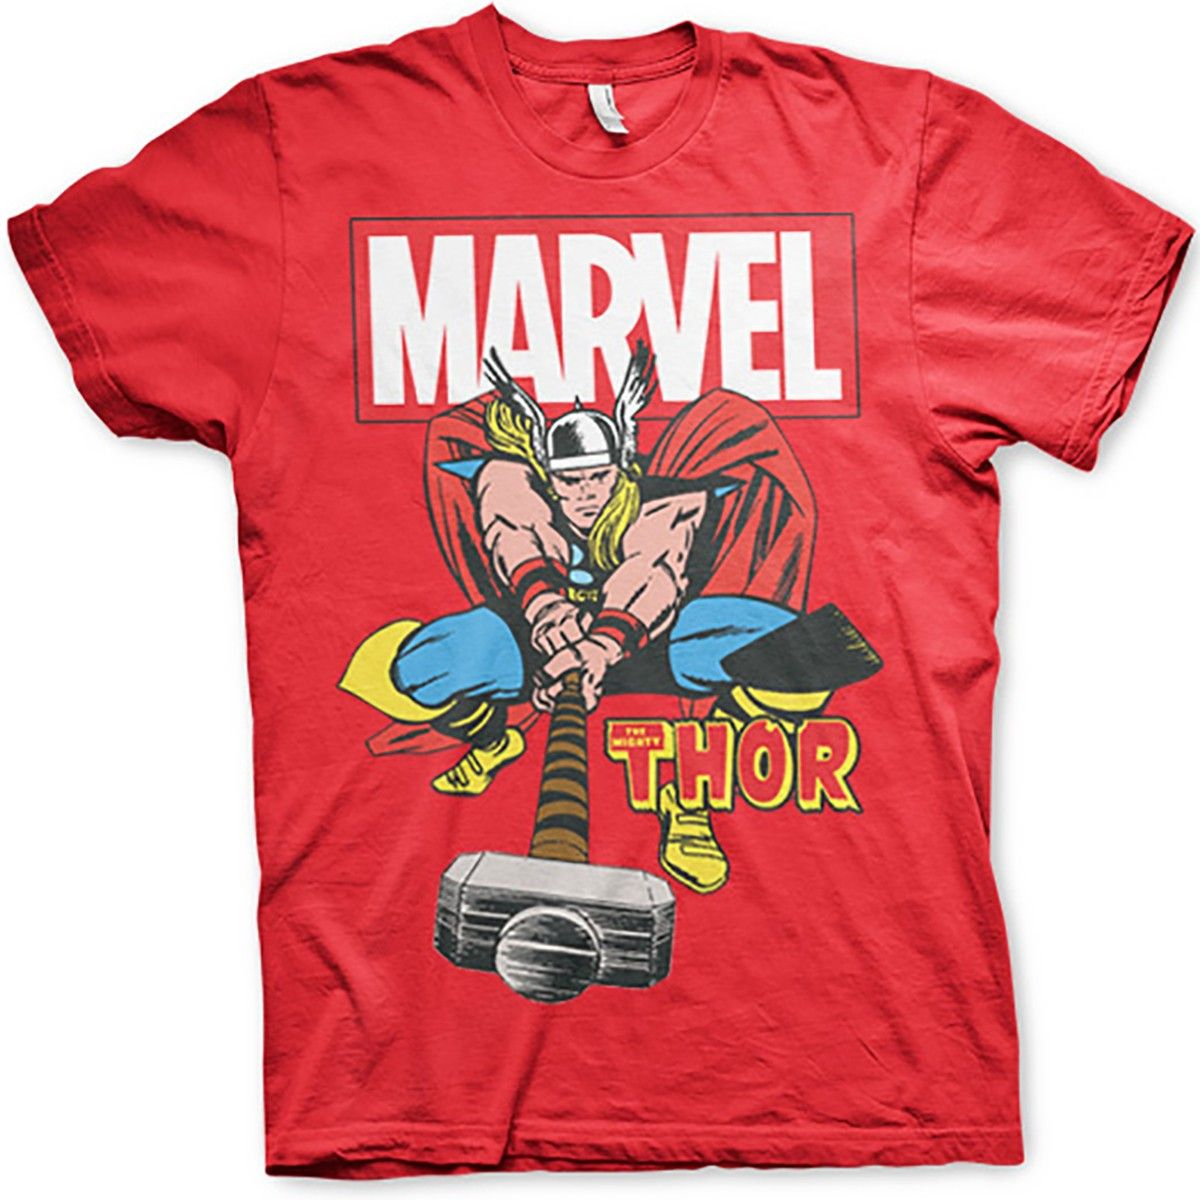 Marvel Comics T Shirt - The Mighty Thor